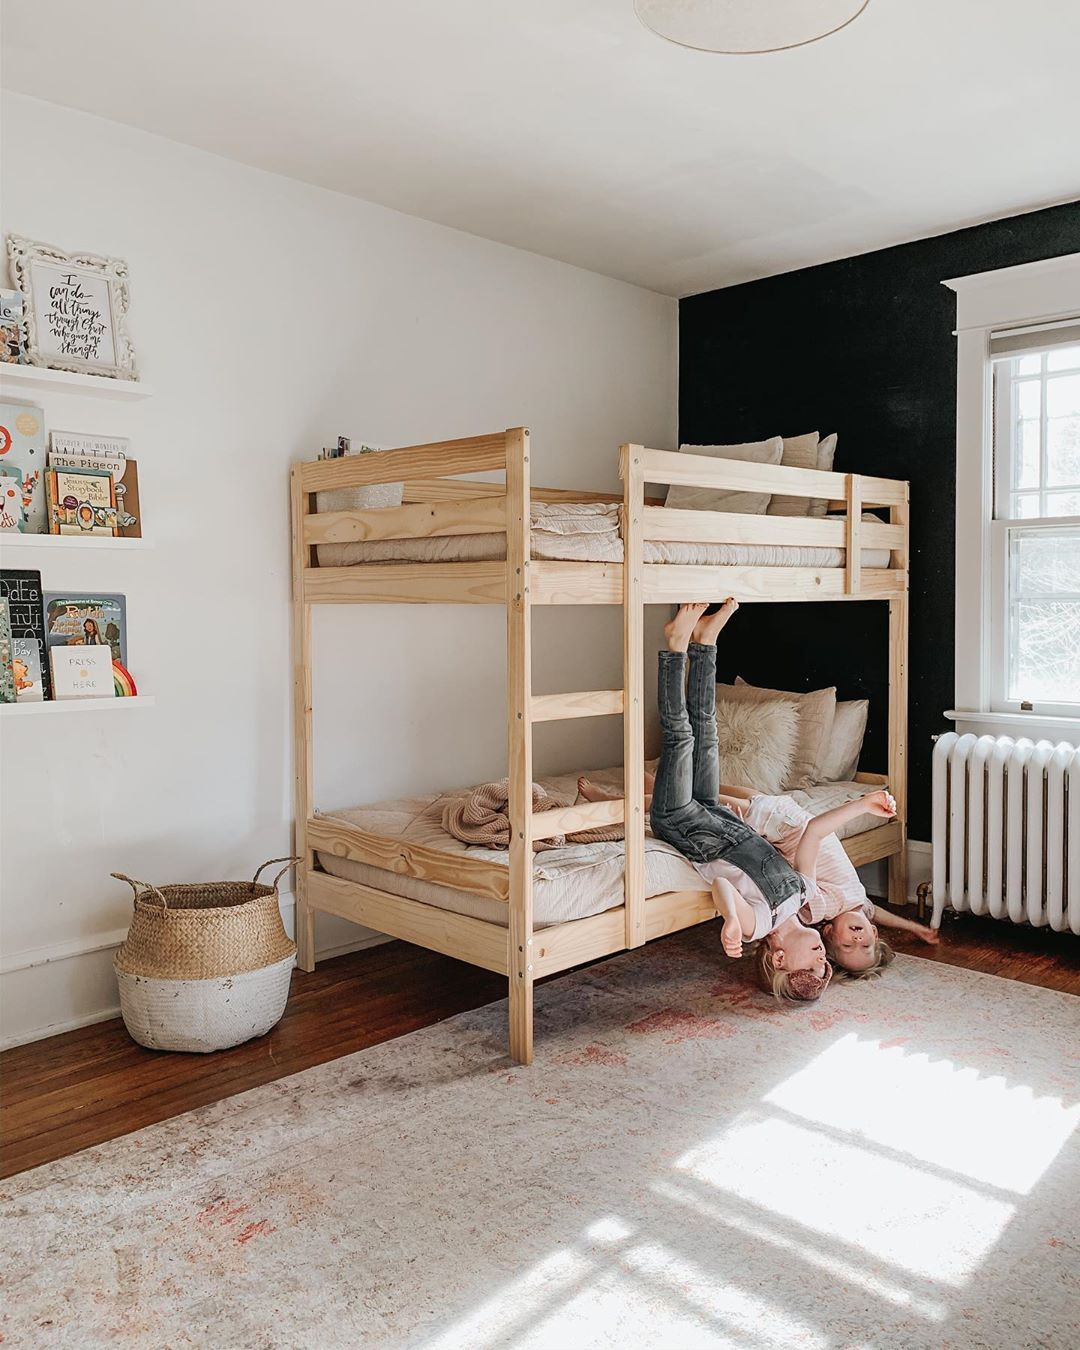 Maureen Eisenhart On Instagram Hanging Around With These Monkeys Dreaming Up Ideas For Their Shared Girls Bedroom Shared Bedroom Boy And Girl Shared Bedroom